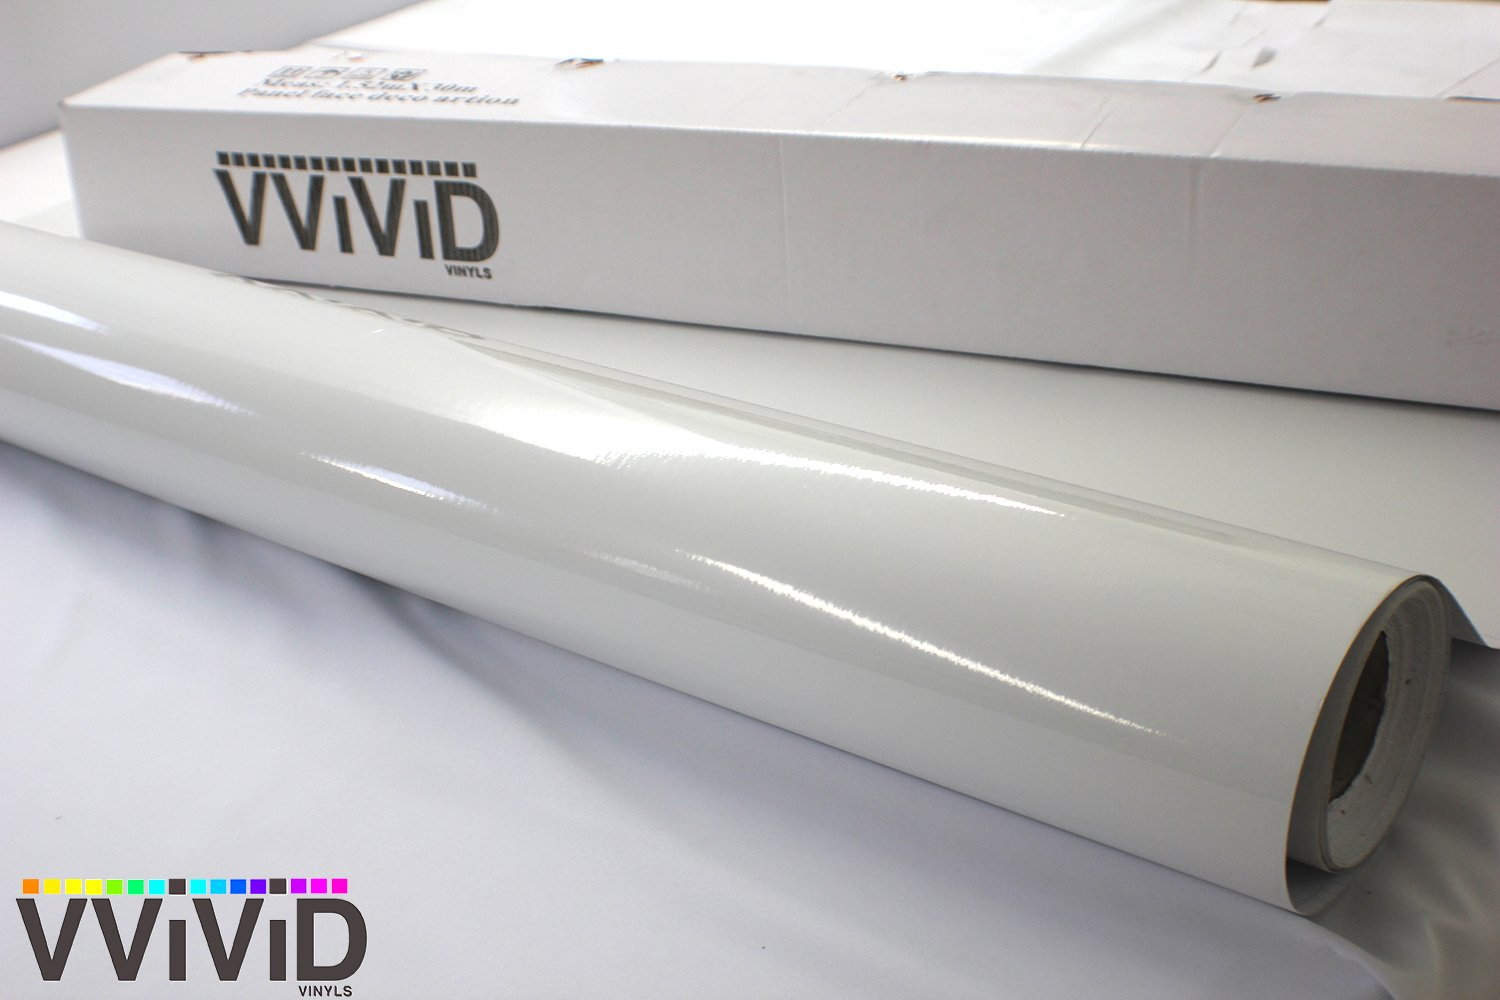 VViViD White High Gloss Realistic Paint-Like Microfinish Vinyl Wrap Roll XPO Air Release Technology (10ft x 5ft) by VViViD (Image #4)